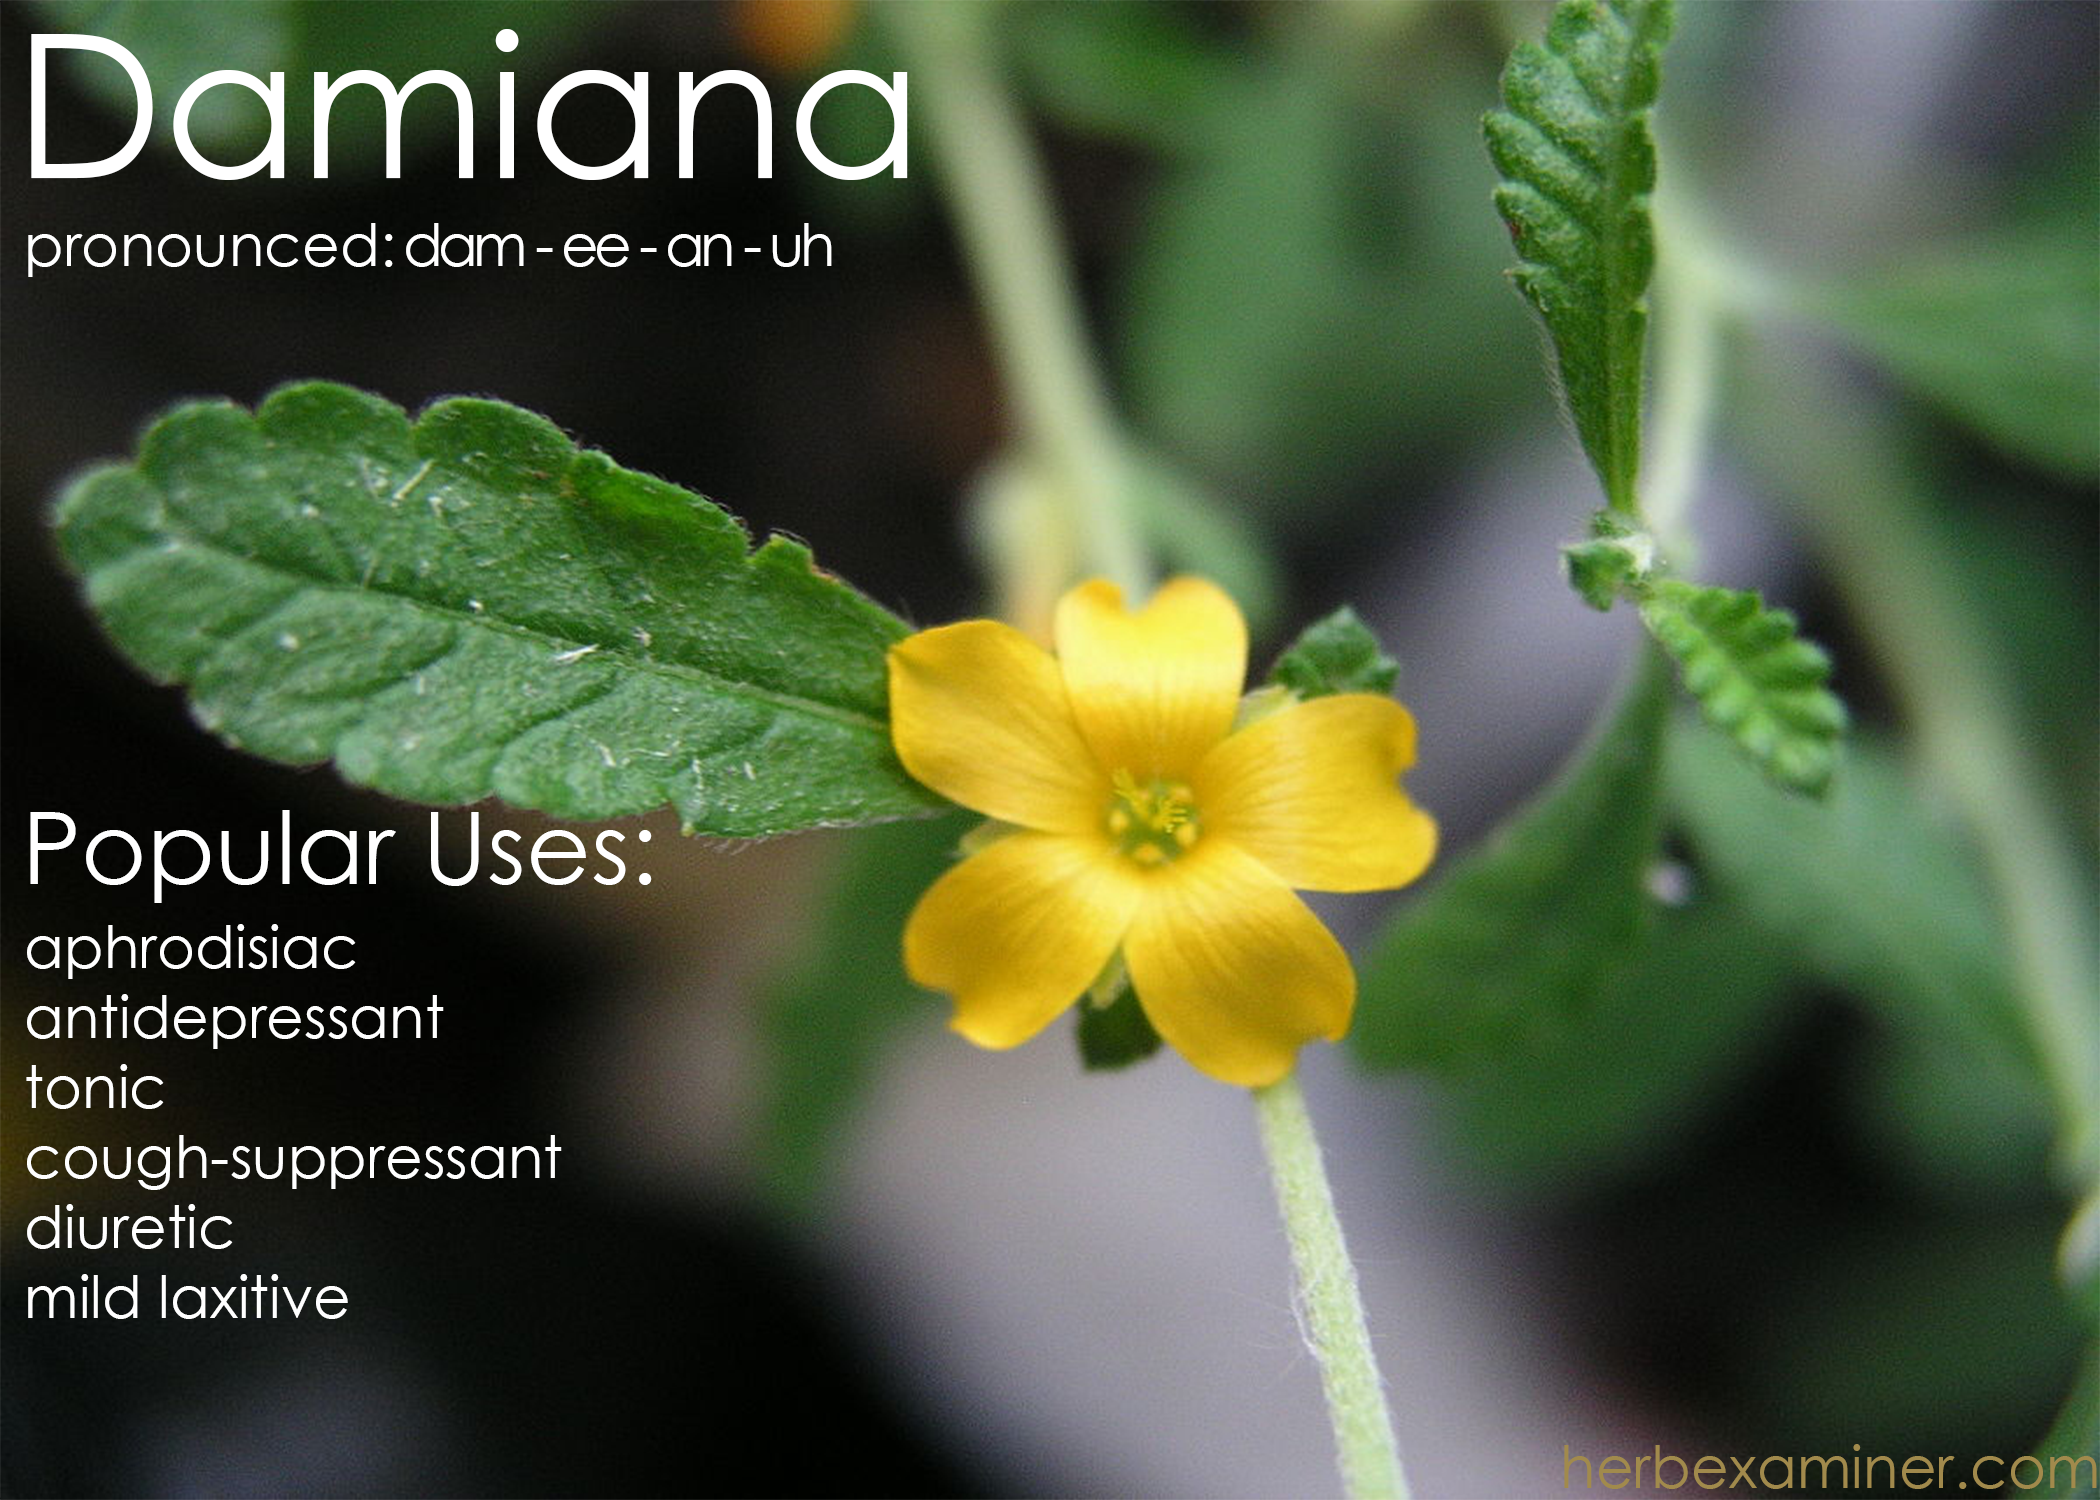 Damiana: A Quick Glance - Herb Examiner - Medium